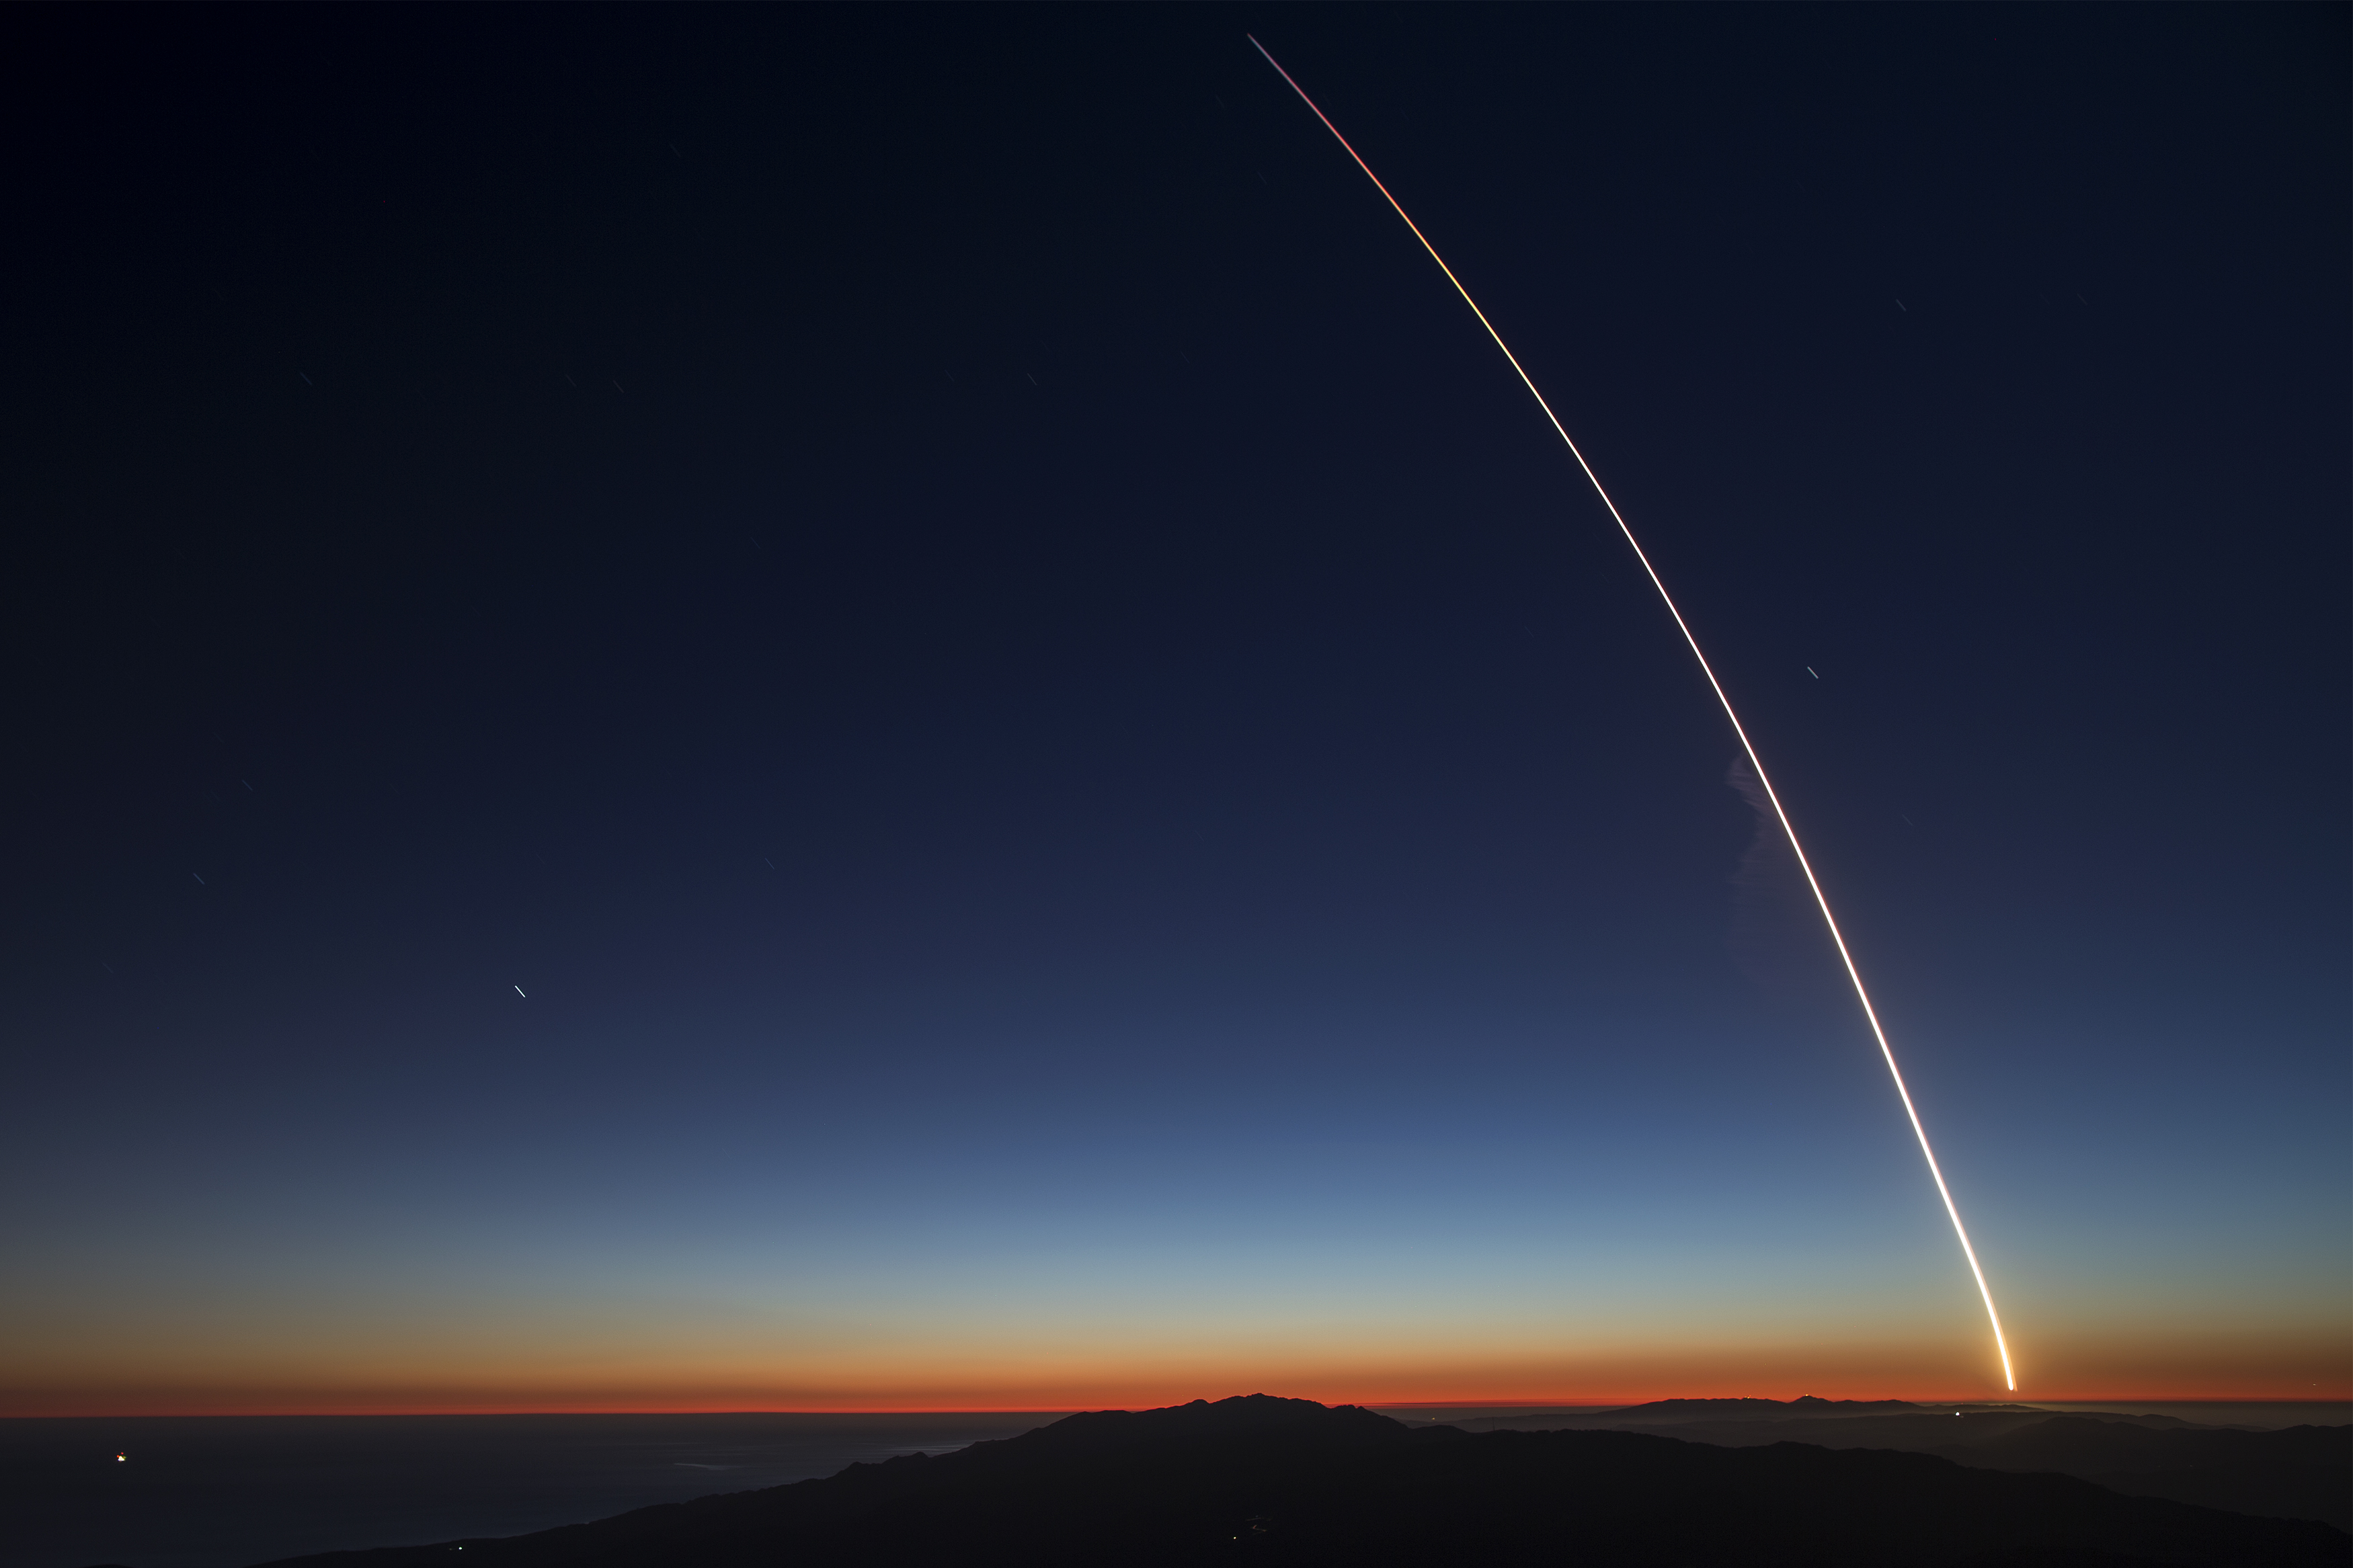 The SpaceX Falcon 9 rocket launches from Vandenberg Air Force Base carrying the SAOCOM 1A and ITASAT 1 satellites, as seen during a long exposure on October 7, 2018 near Santa Barbara, California.